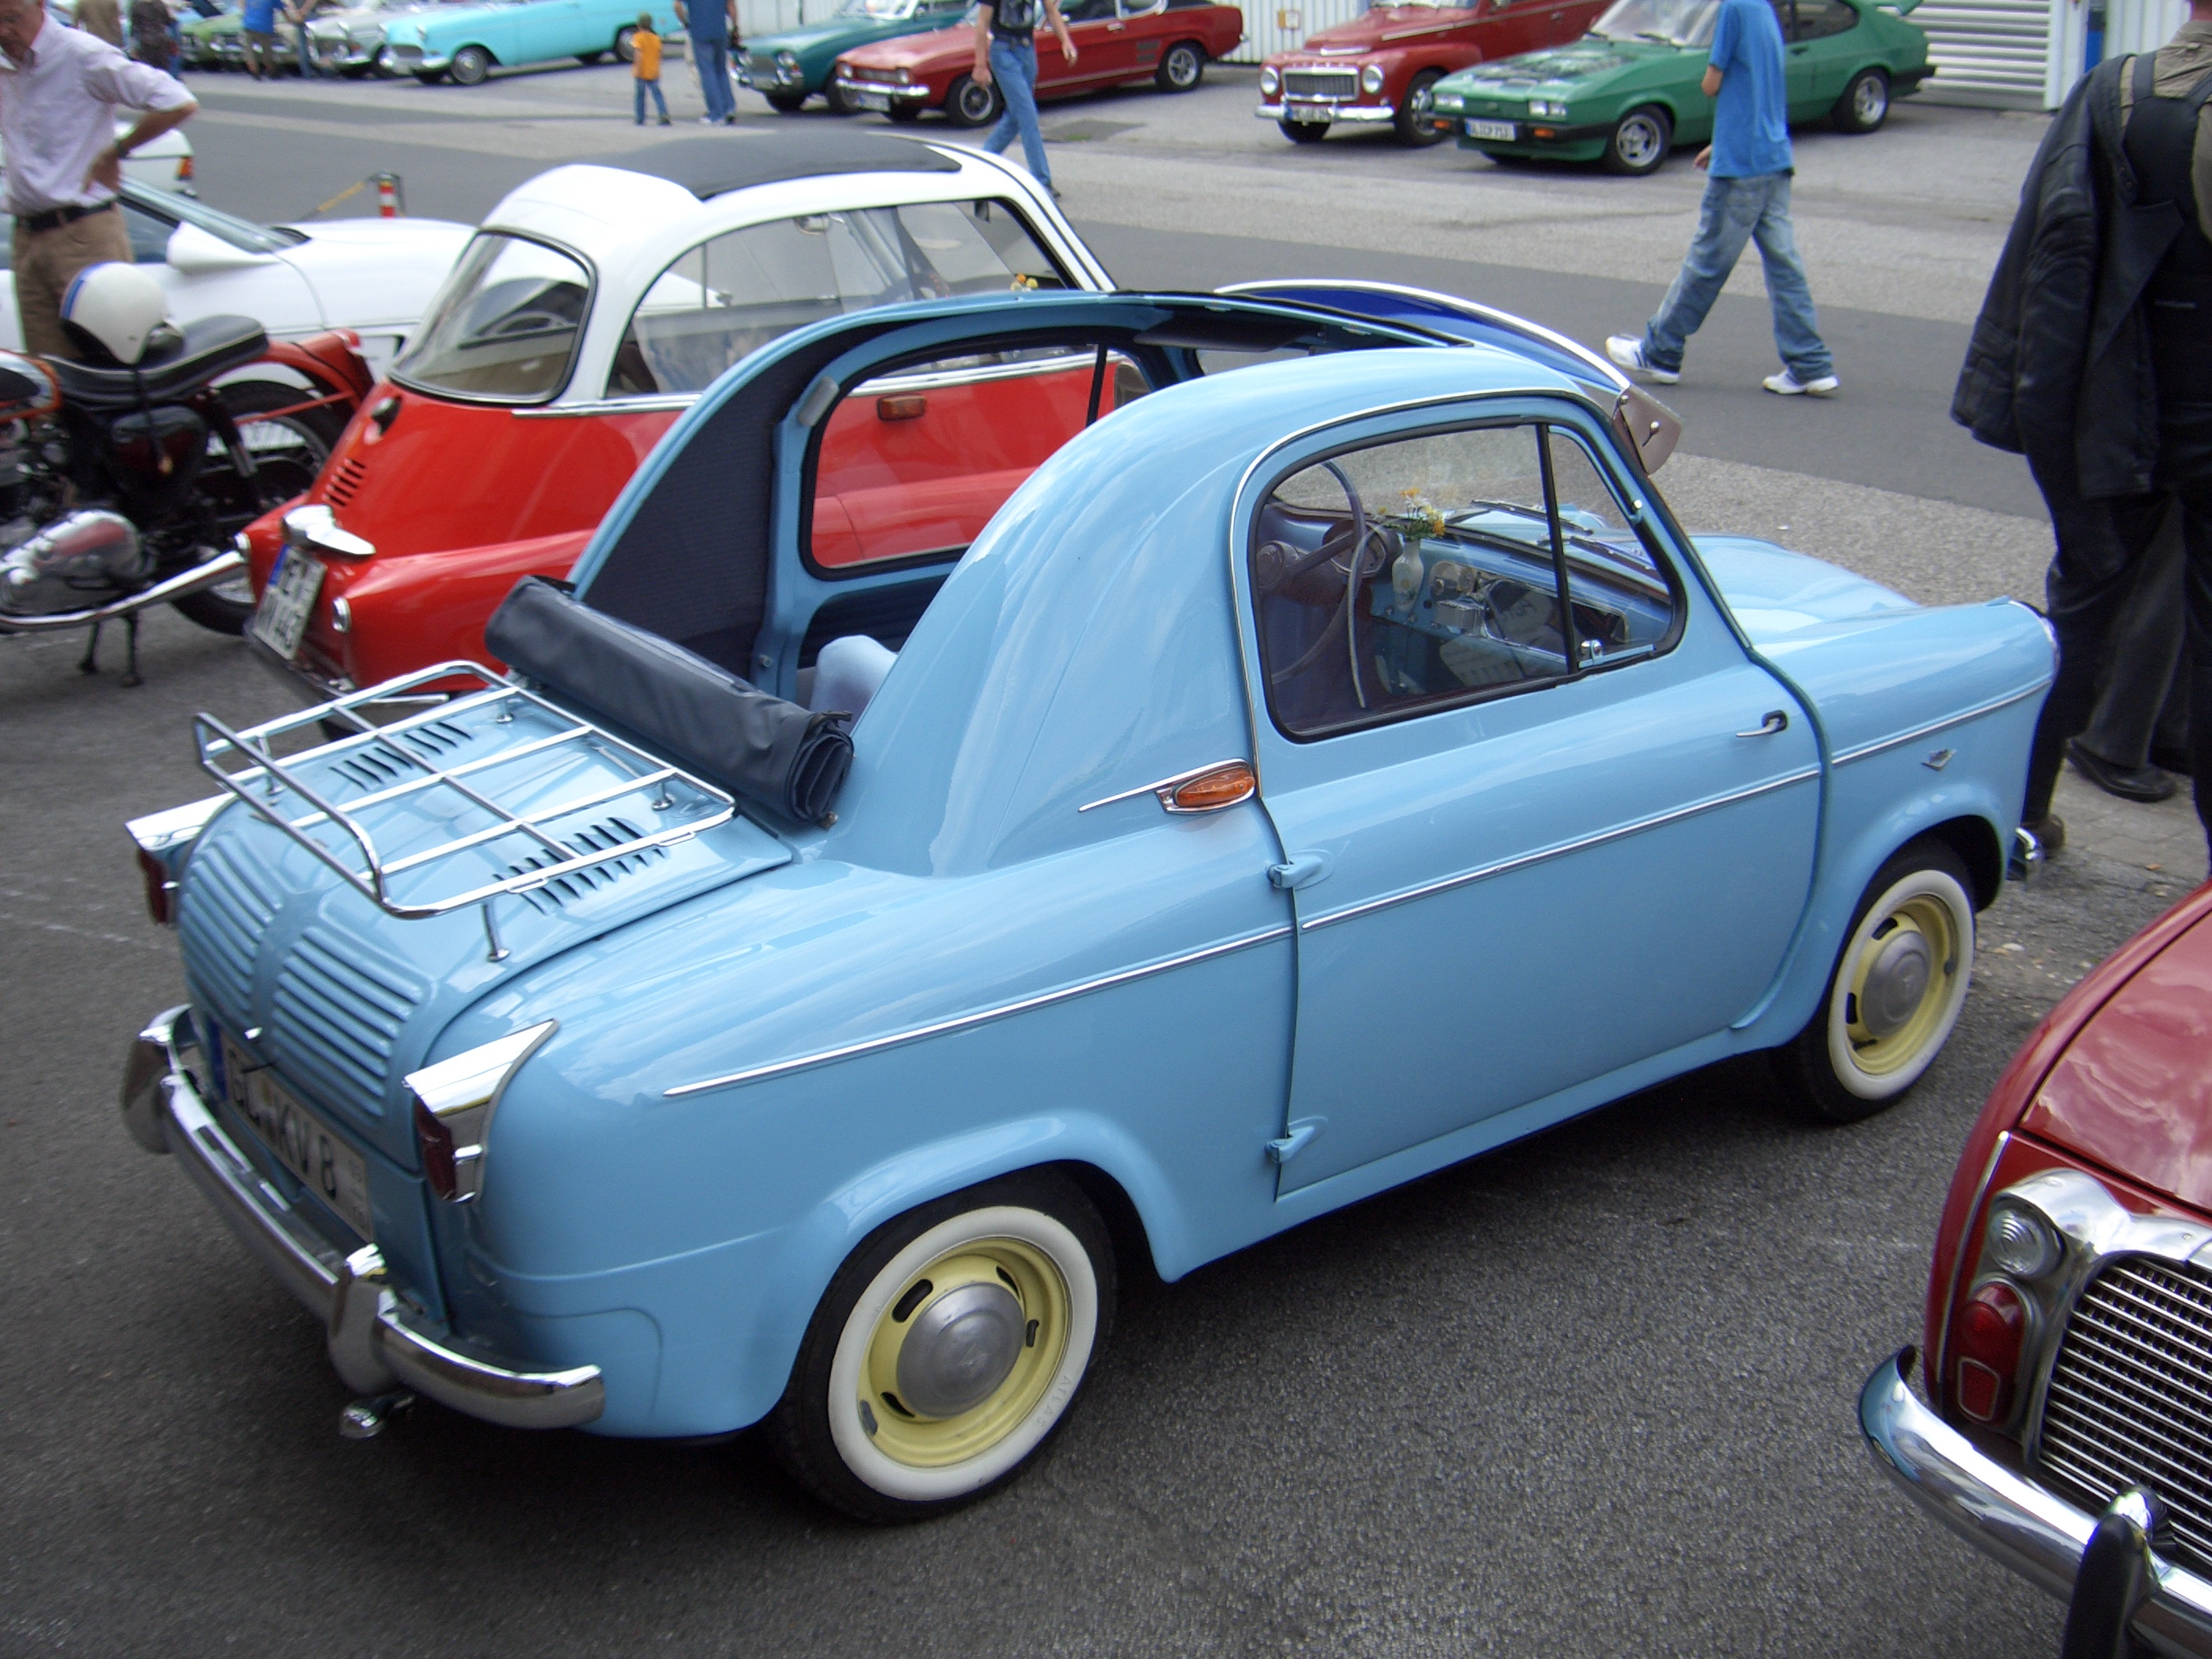 1961 Vespa 400 Automobile http://commons.wikimedia.org/wiki/File:Piaggio_Vespa_400_1957-1961_backright_2008-08-17_A.jpg